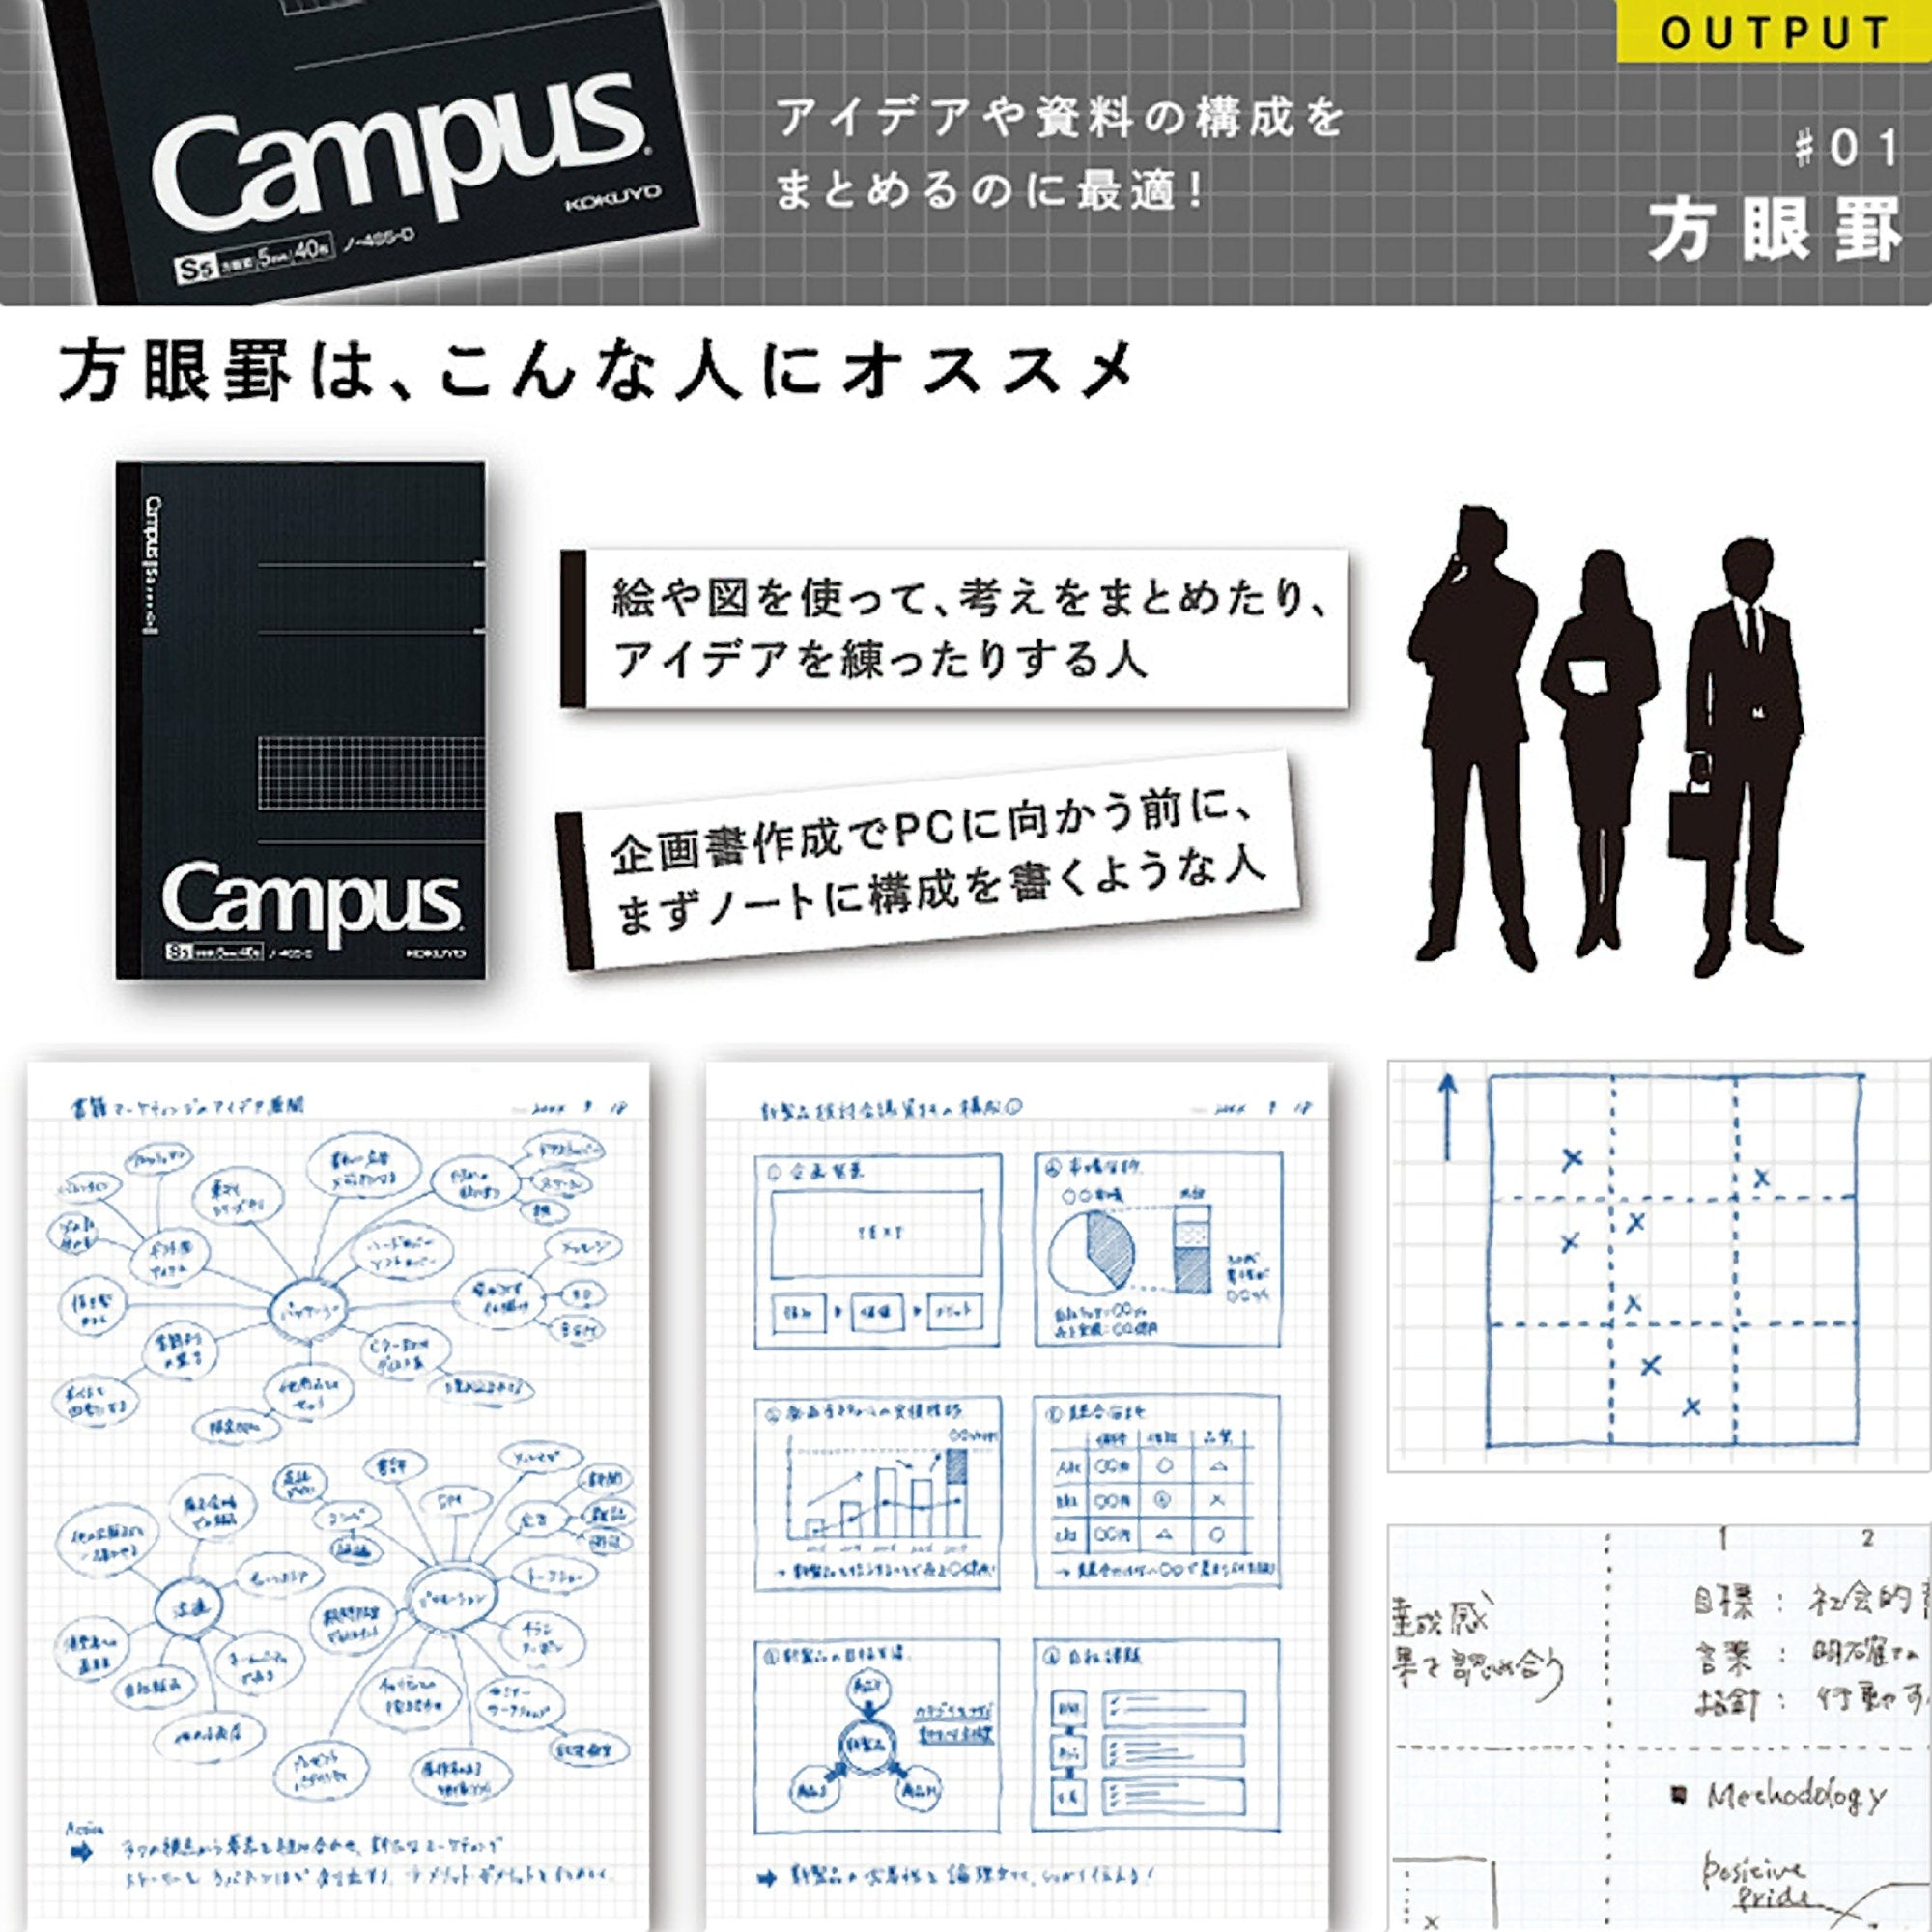 Kokuyo B5 Campus Notebook Black 5mm Grid | 80 Sheets 8S5-D - The Stationery Life!